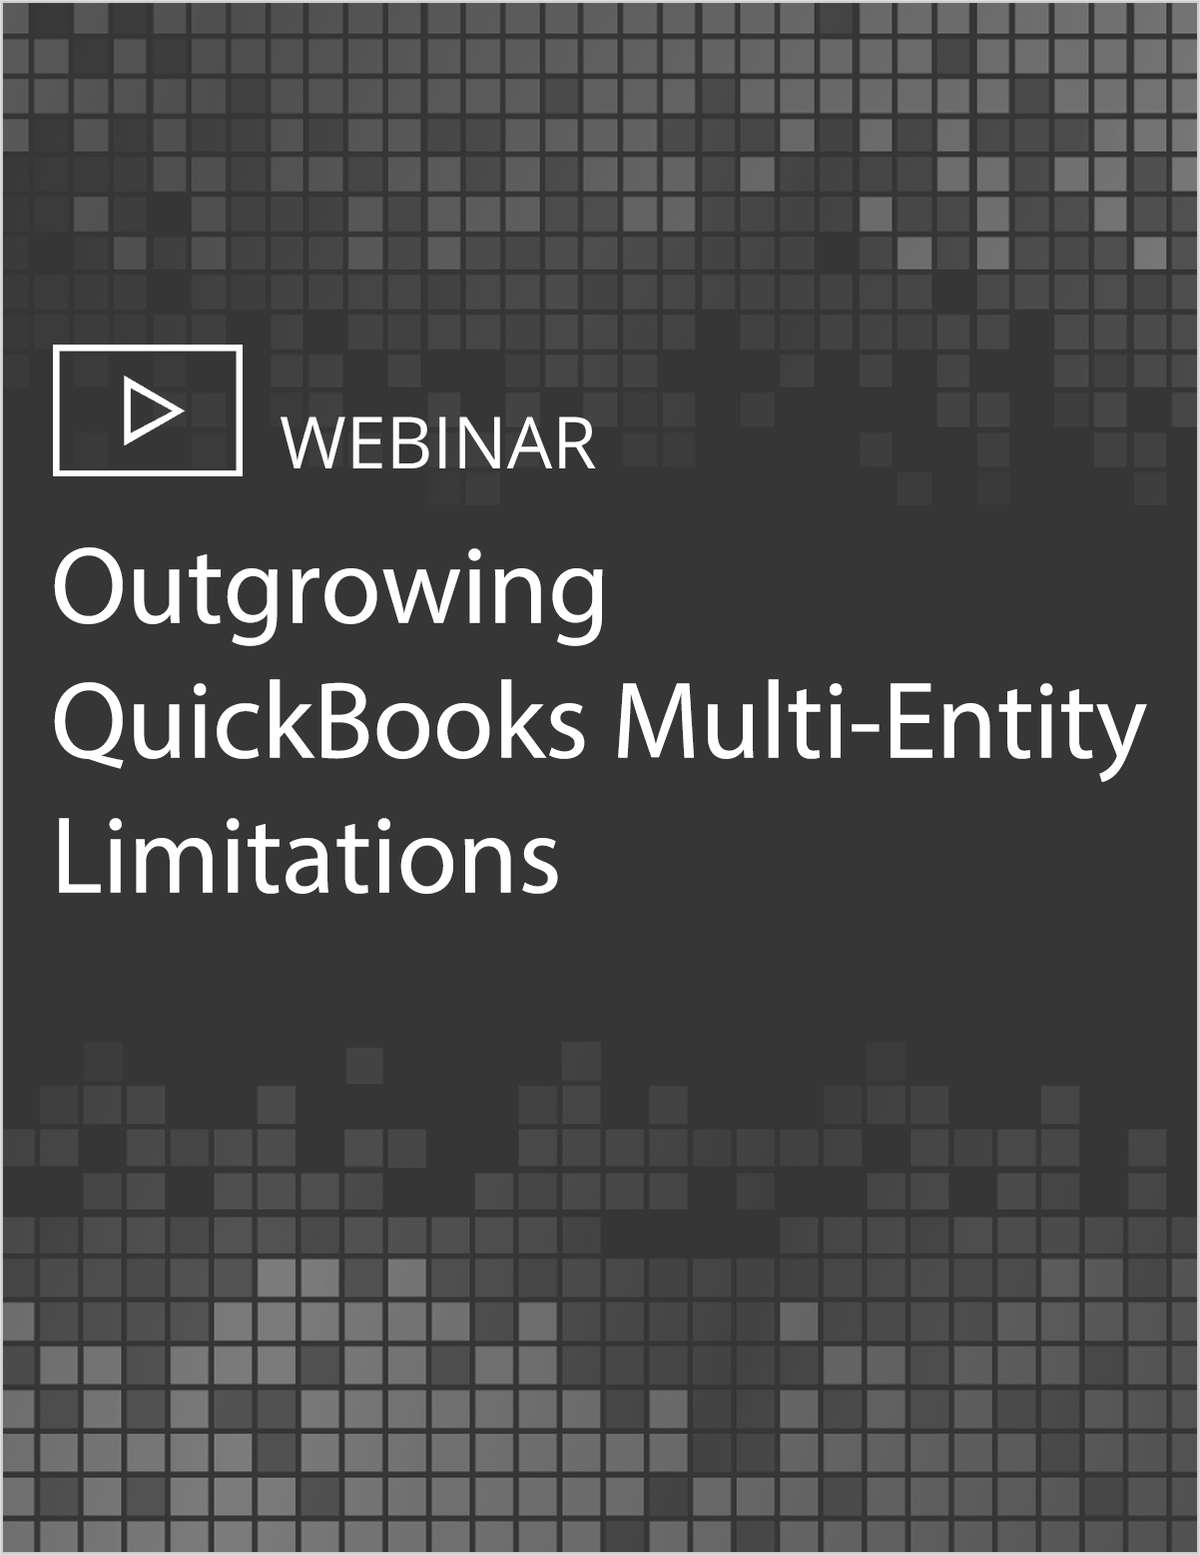 Outgrowing QuickBooks Multi-Entity Limitations